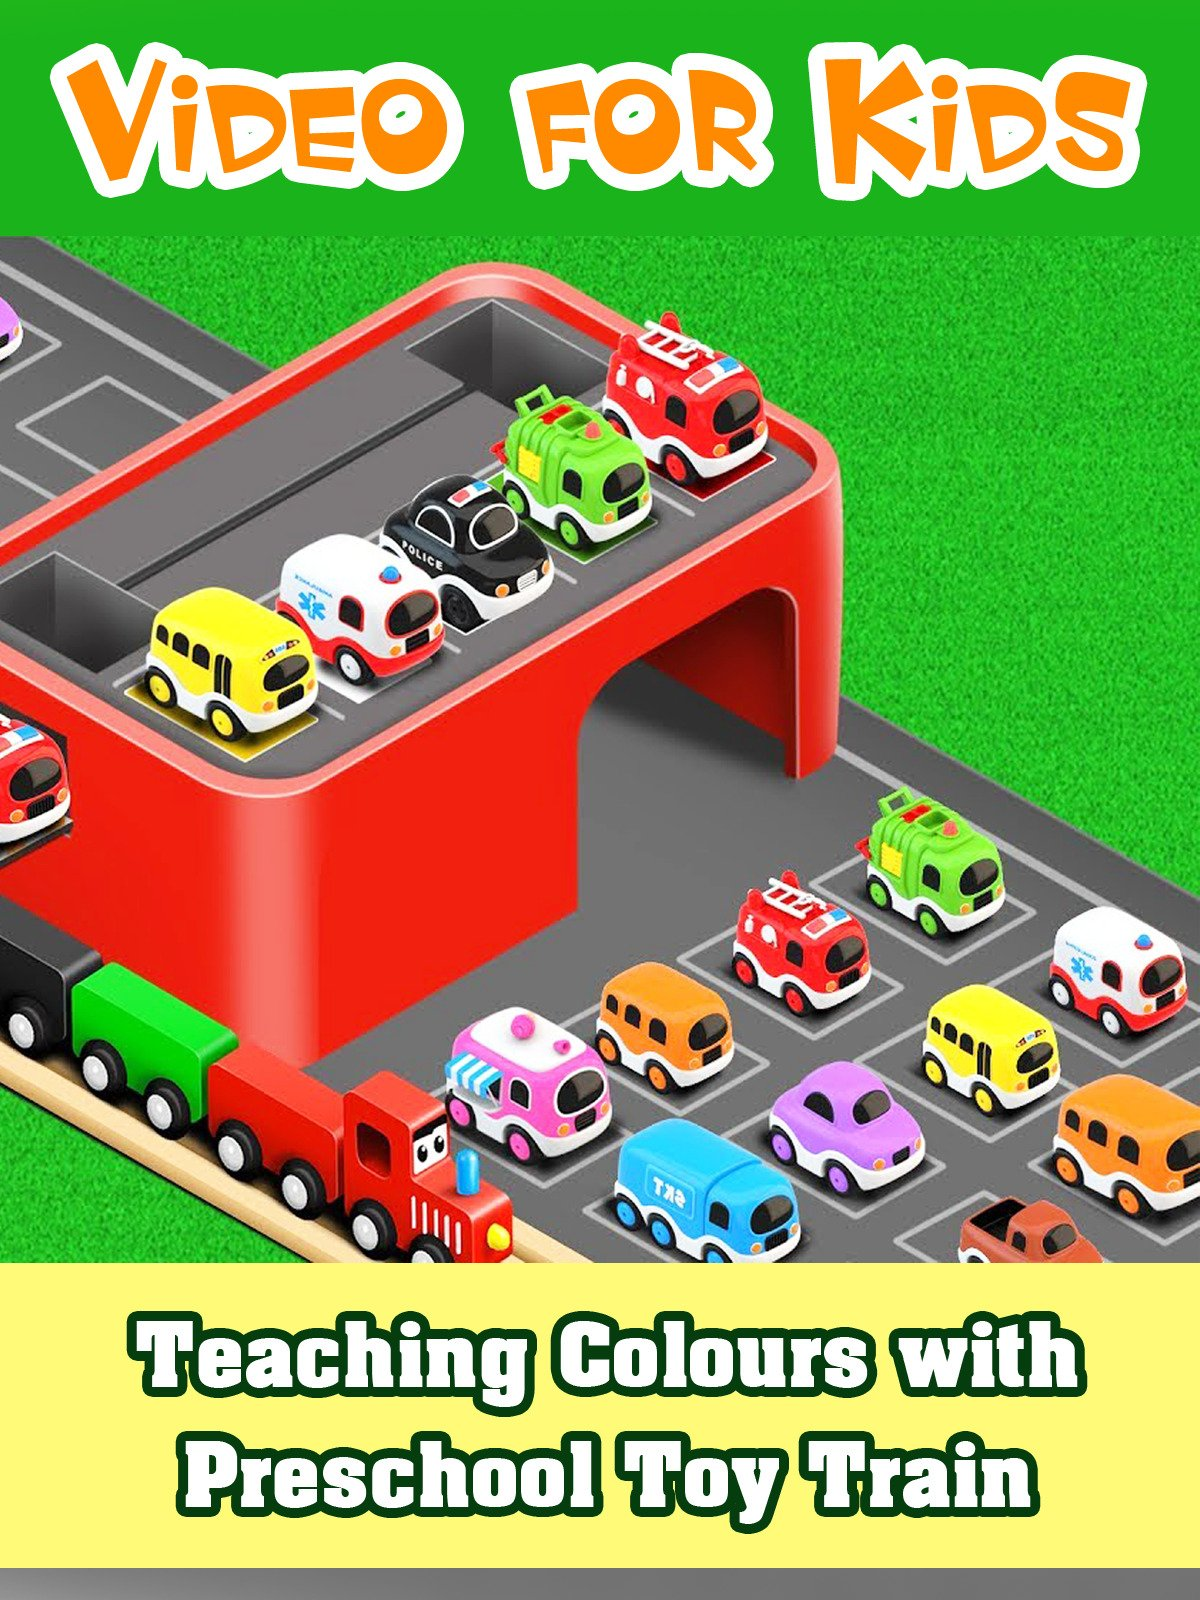 Teaching Colours with Preschool Toy Train